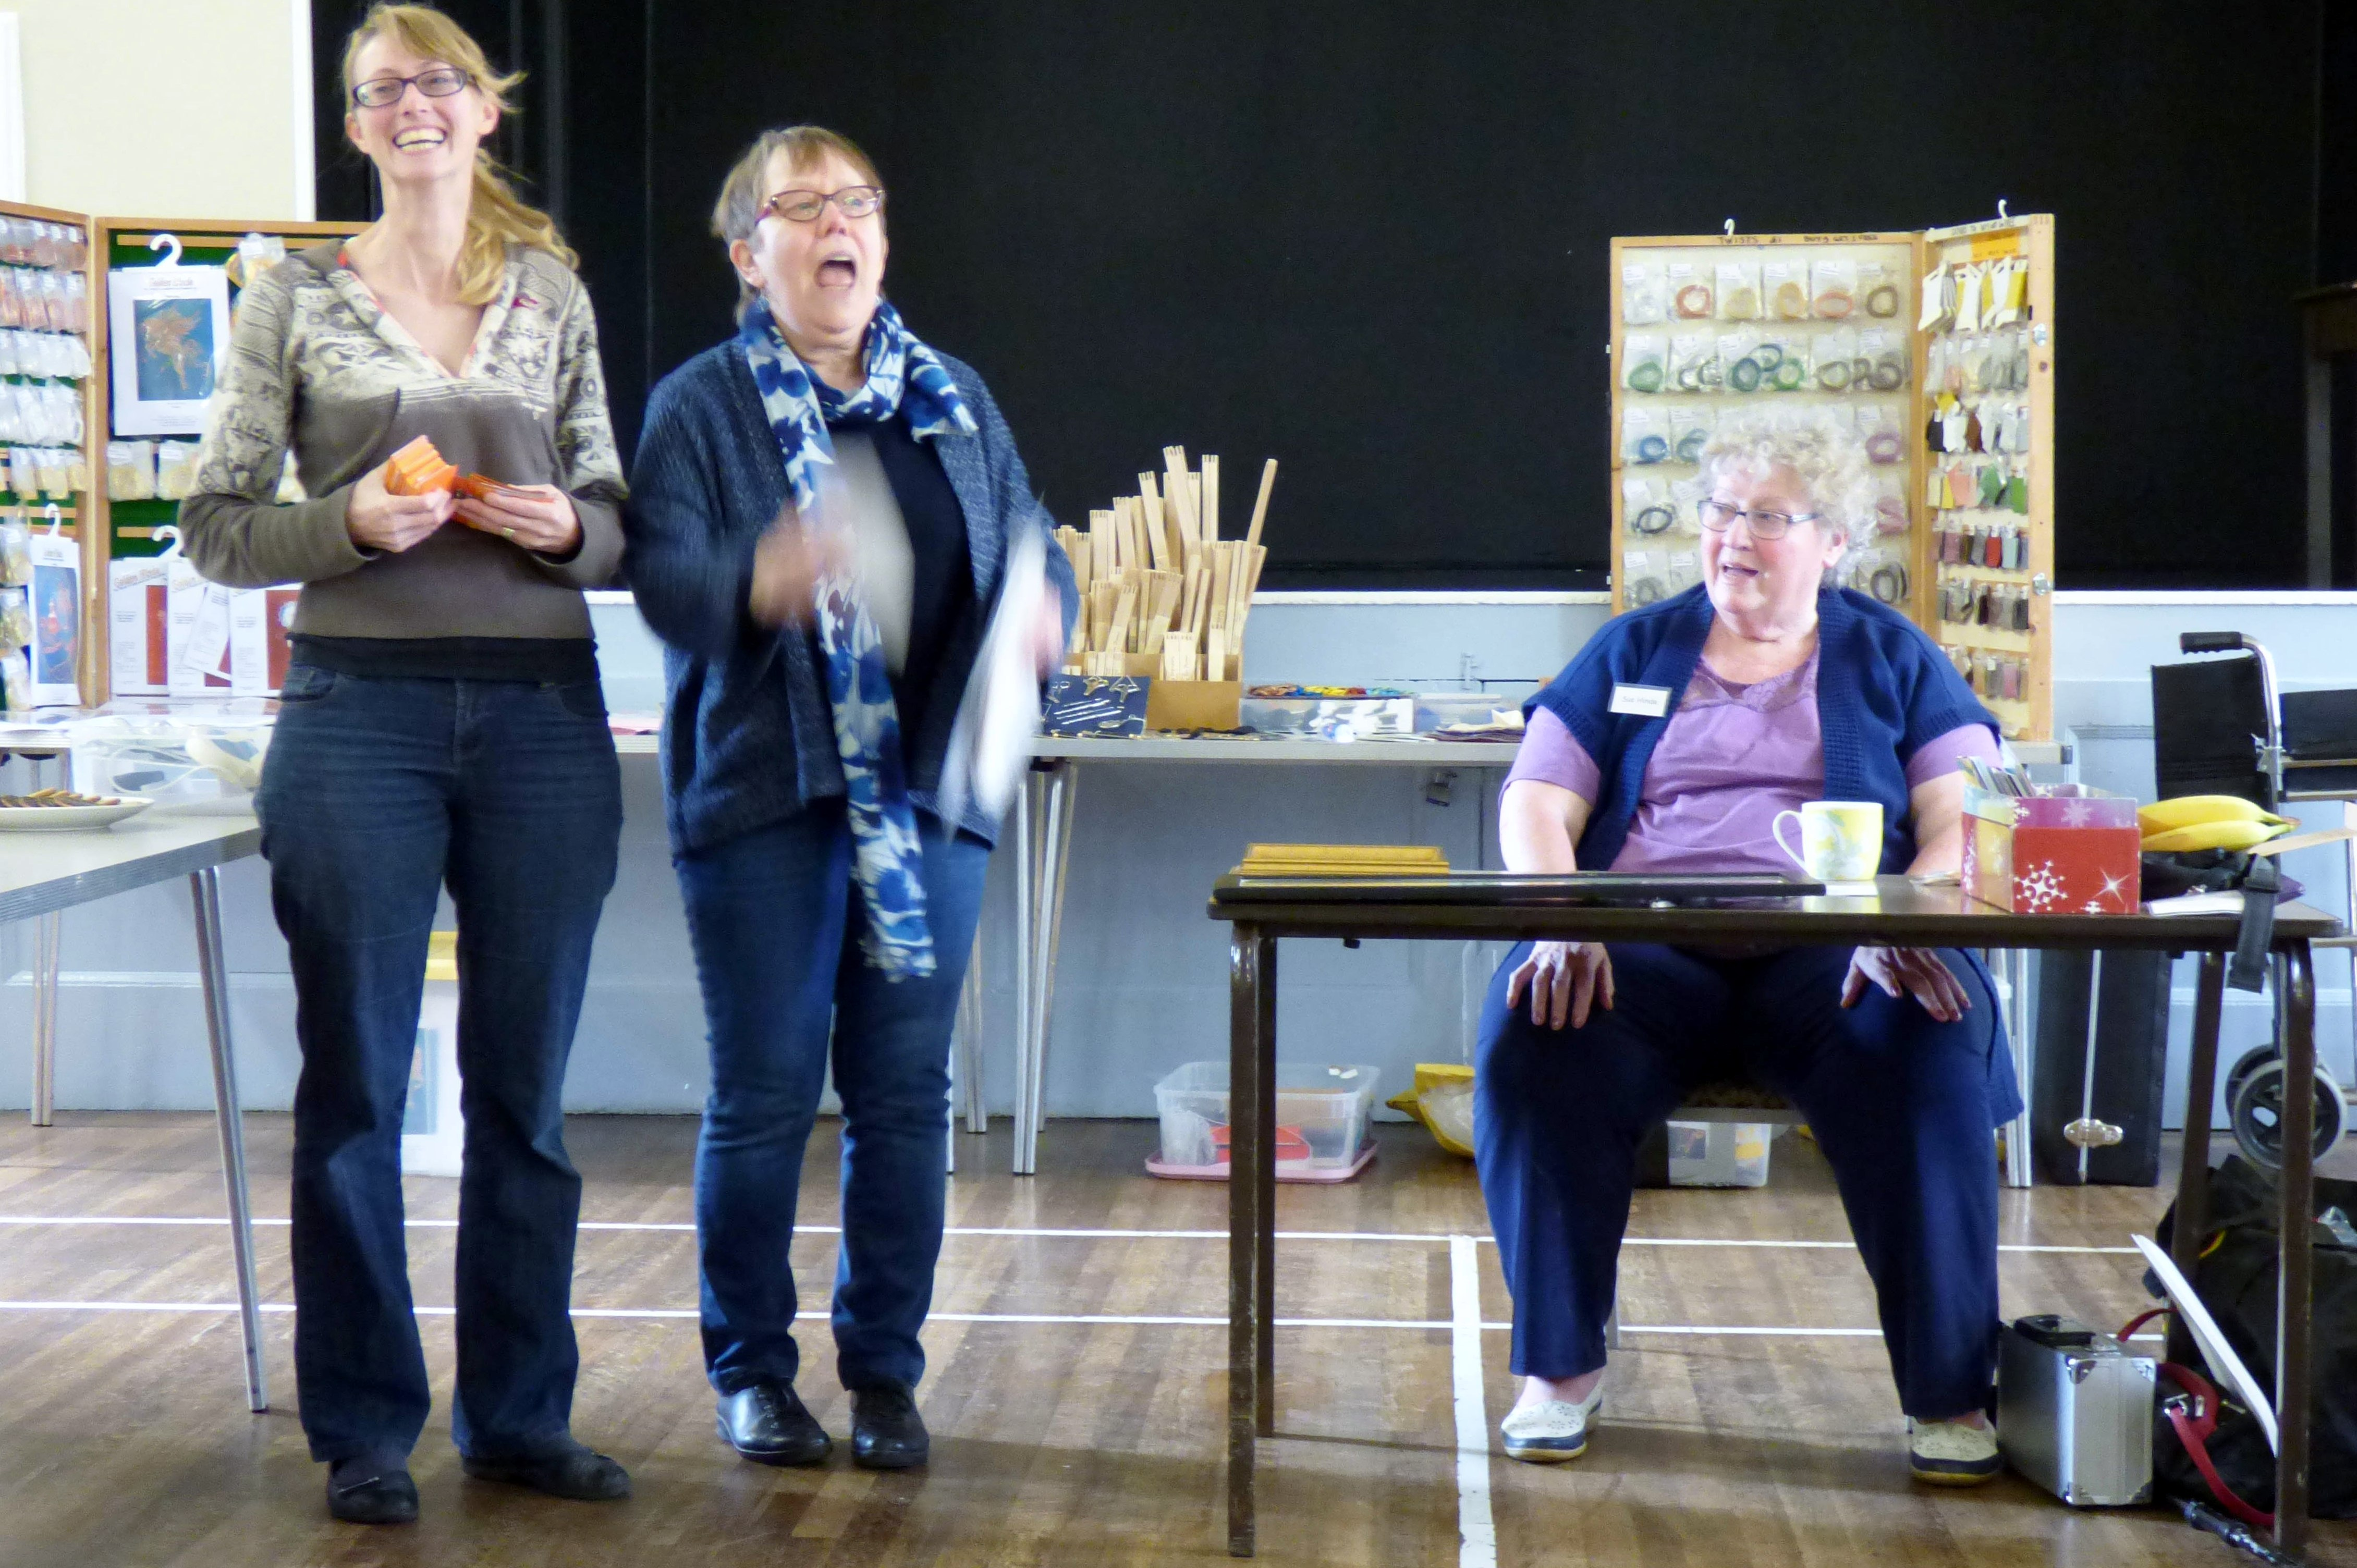 Marie is leading the group singing 'Happy Birthday' to Sarah Rakestraw at Or Nue Workshop with Golden Hinde